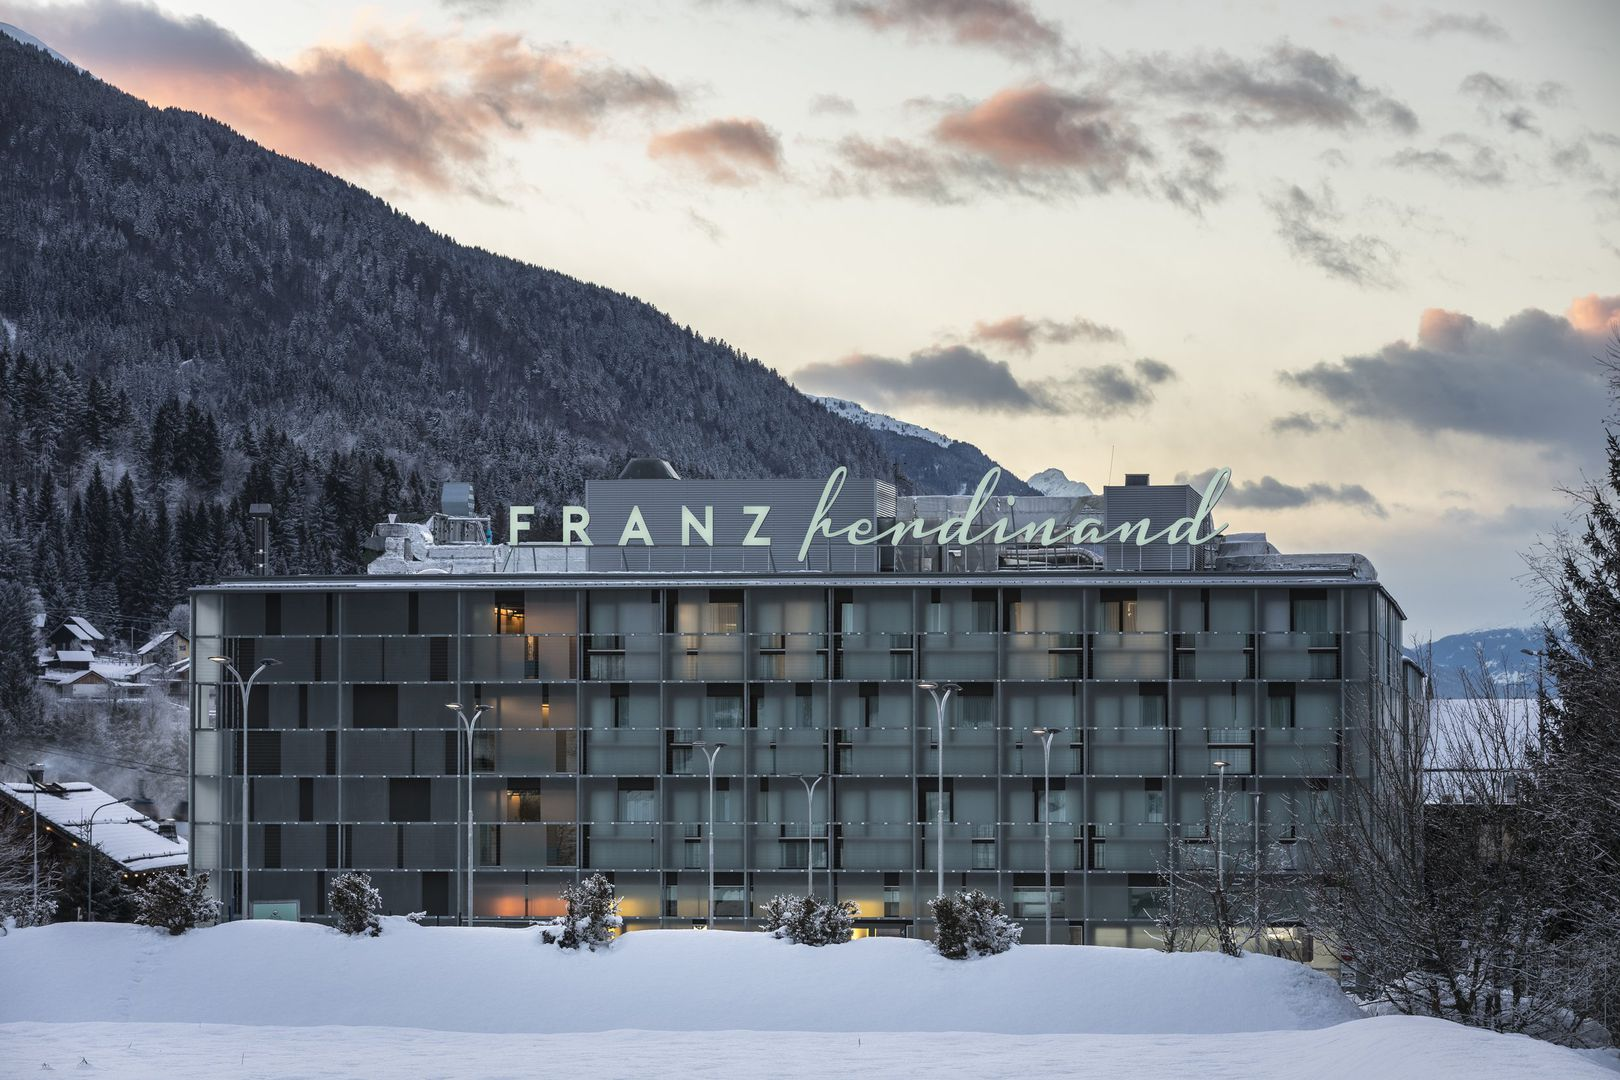 Appartement de vacances Doppelzimmer Du/WC (ca. 21 m²), HP, FRANZ ferdinand Mountain Resort Nassfeld (2052836), Tröpolach, Naturarena Kärnten, Carinthie, Autriche, image 1